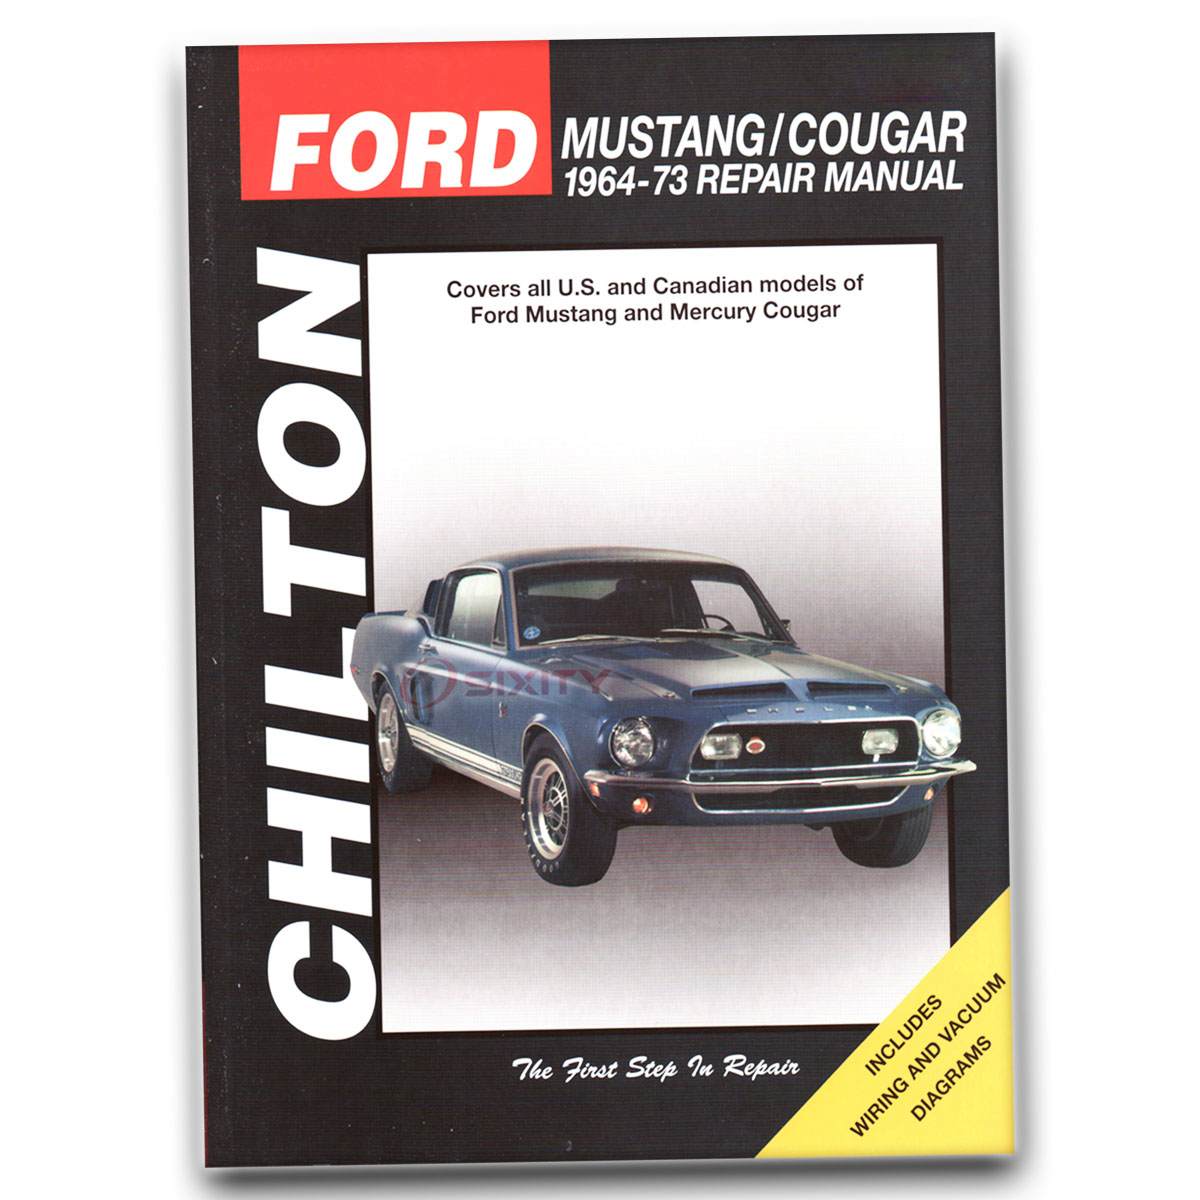 Ford Mustang Chilton Repair Manual Shelby GT-500KR Grande Base Boss 351 gn